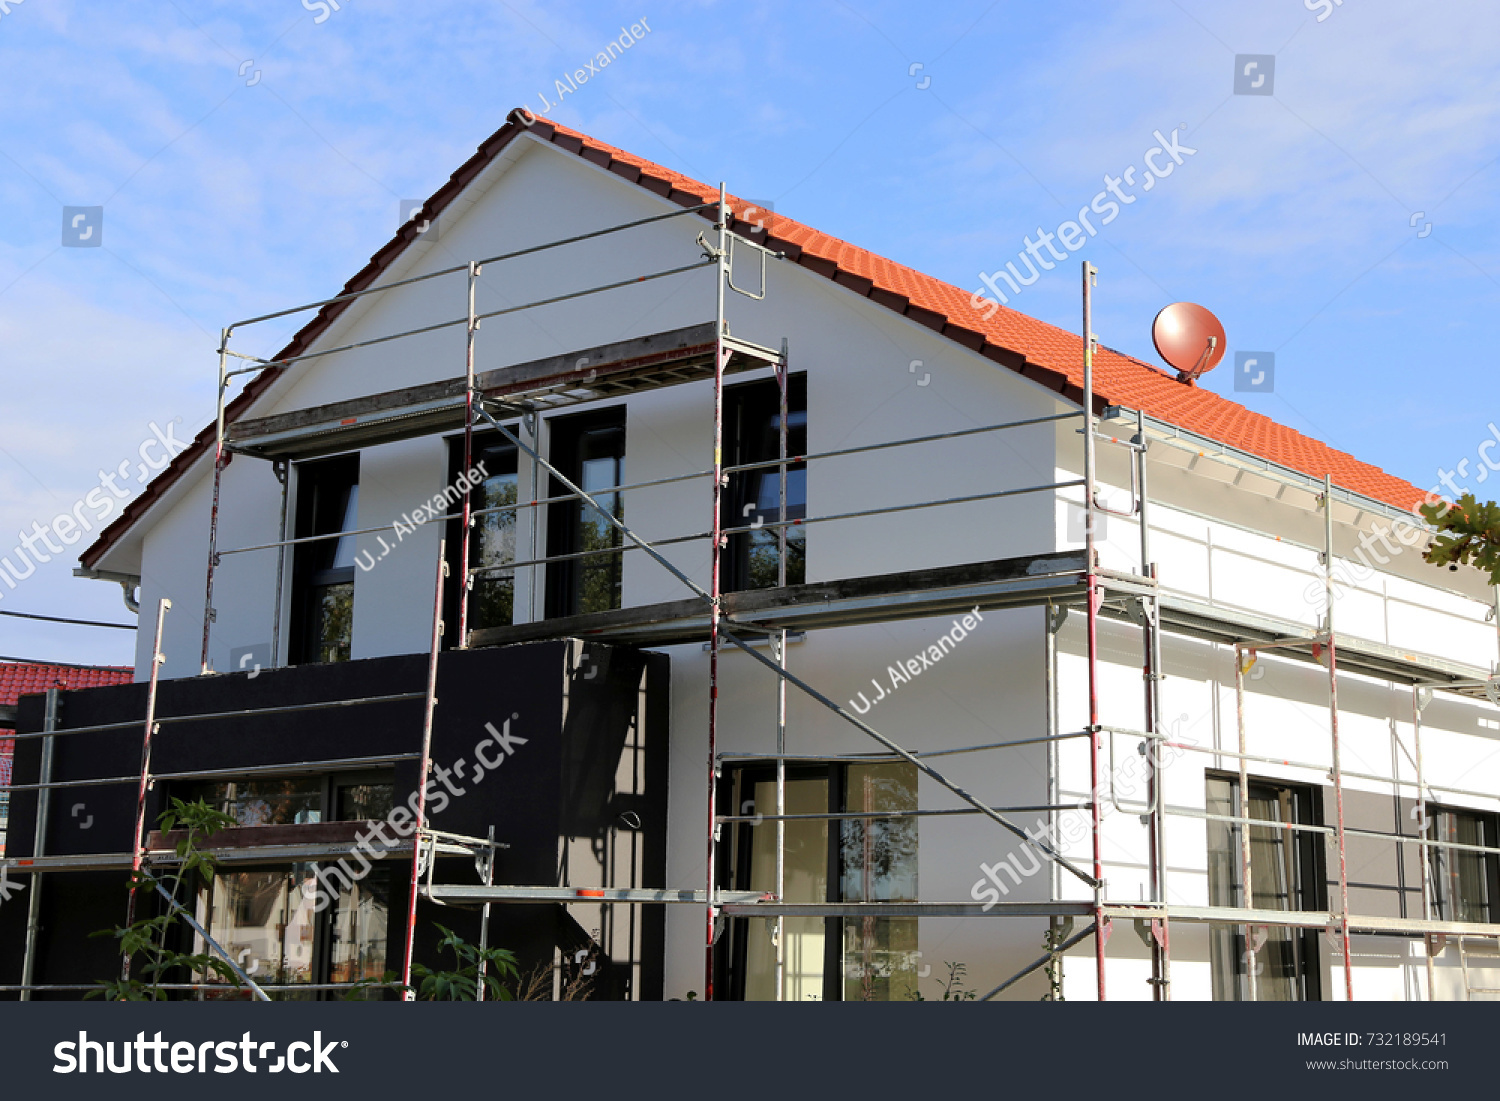 Captivating House With New Facade Painting, Exterior Shot